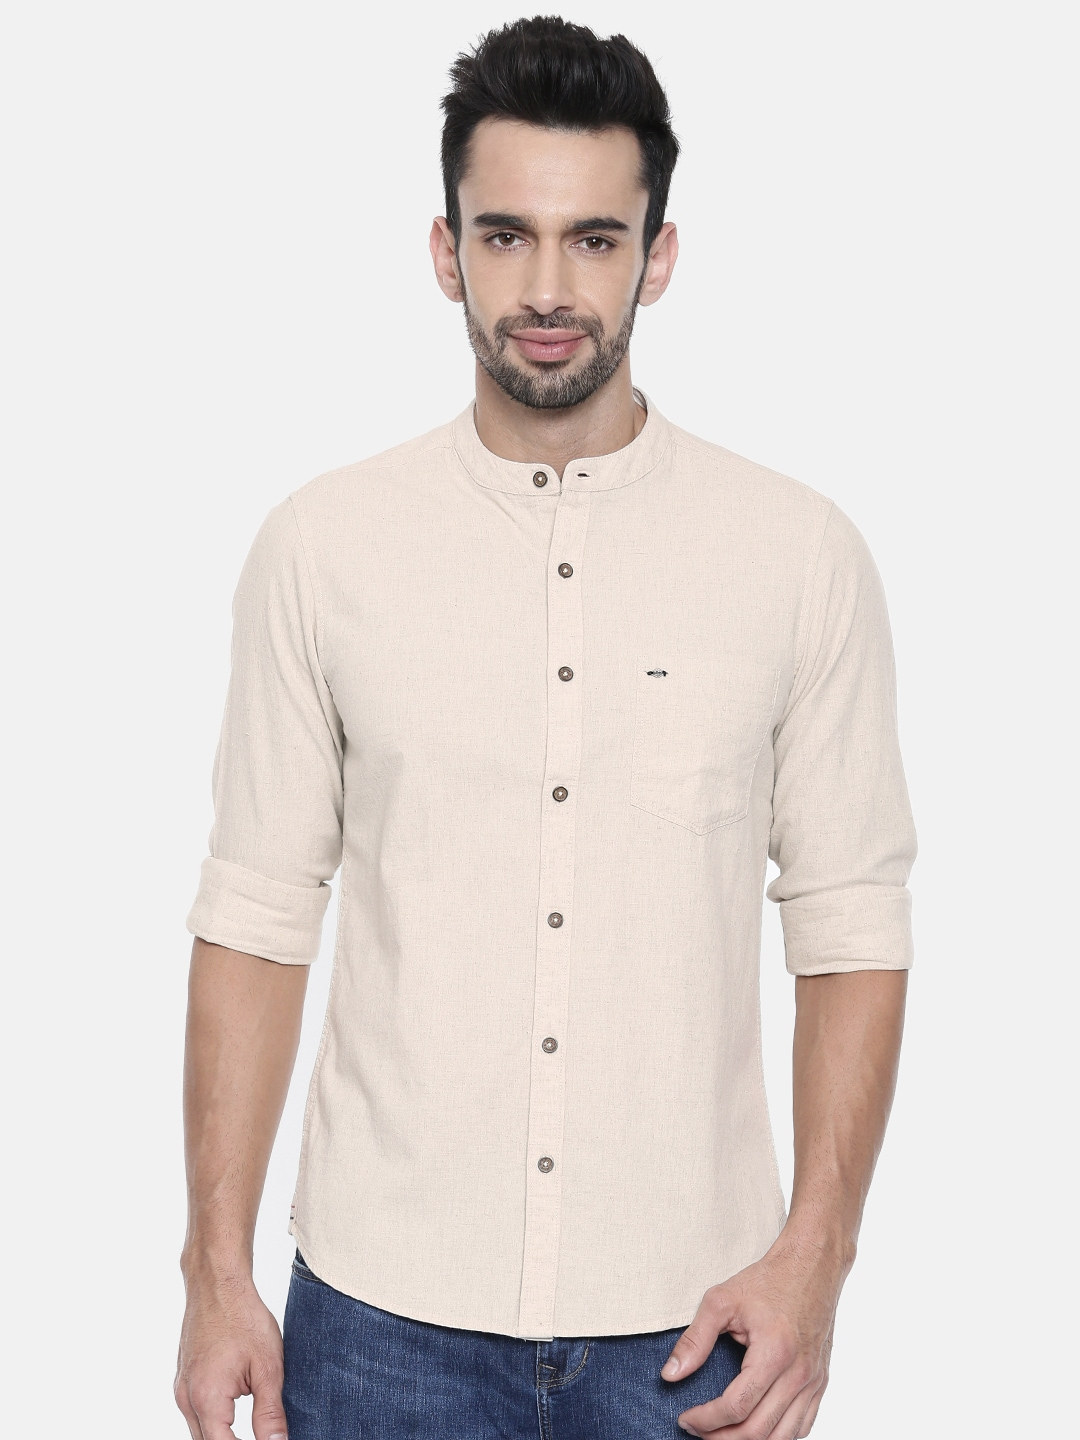 a1c2f4bc Lee Clothing - Buy Lee Clothing Online in India